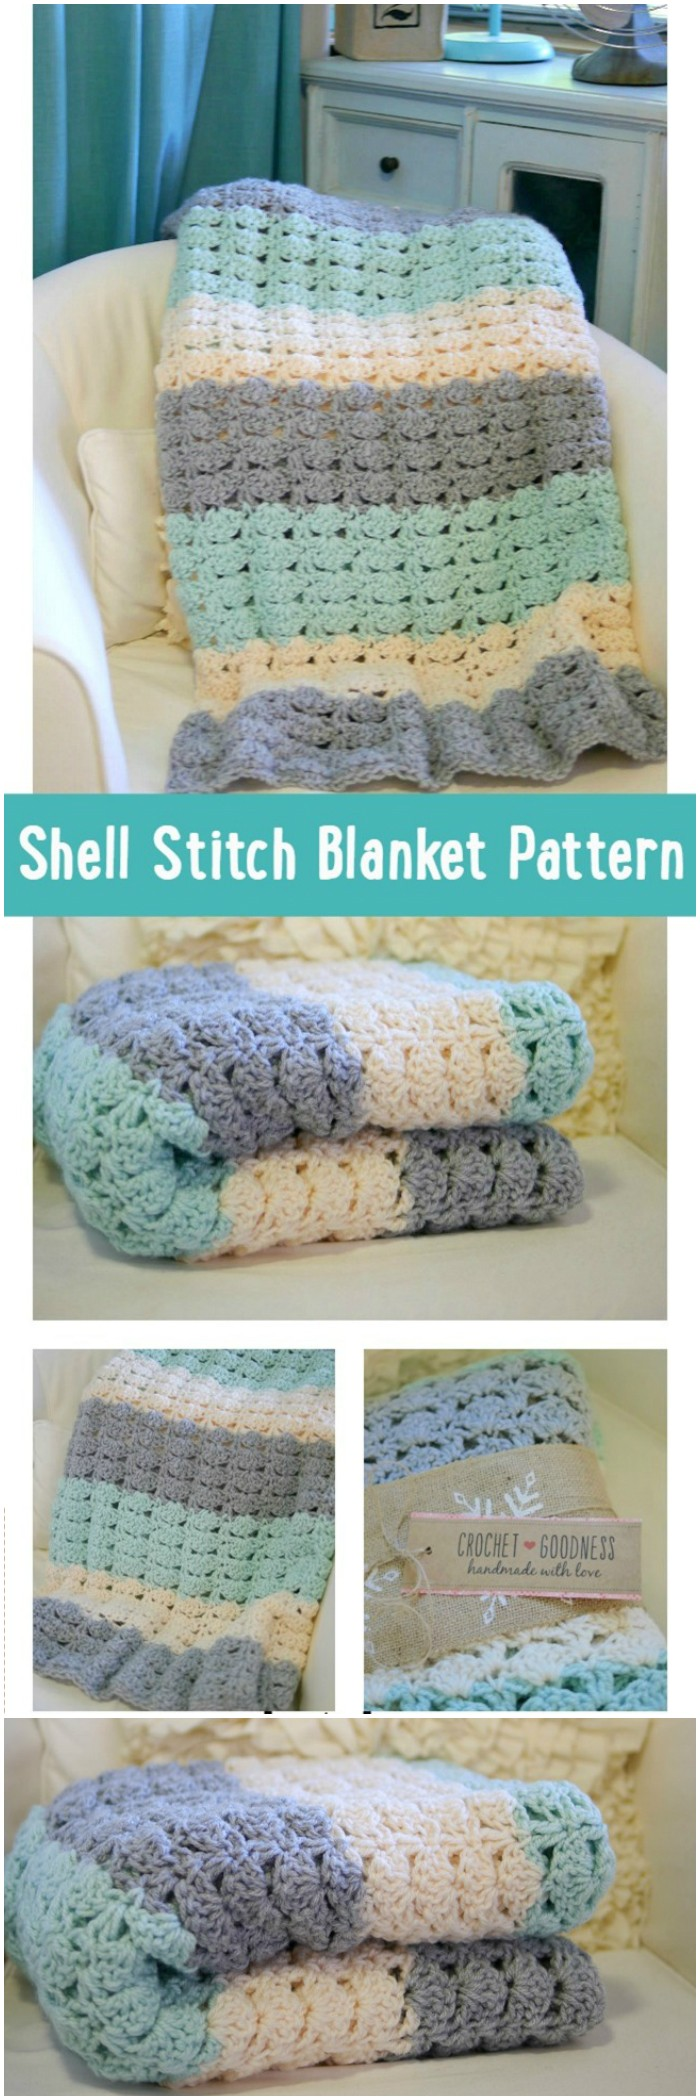 Easy Crochet Shell Stitch Blanket Pattern - All of these free crochet blanket patterns are so much beautiful and really easy. Most of them are so much less time-consuming and even they can be completed in less than one week. #Blankets #crochetblanket #crochetblanketpatterns #freecrochetblanketpattern #freecrochetblanket